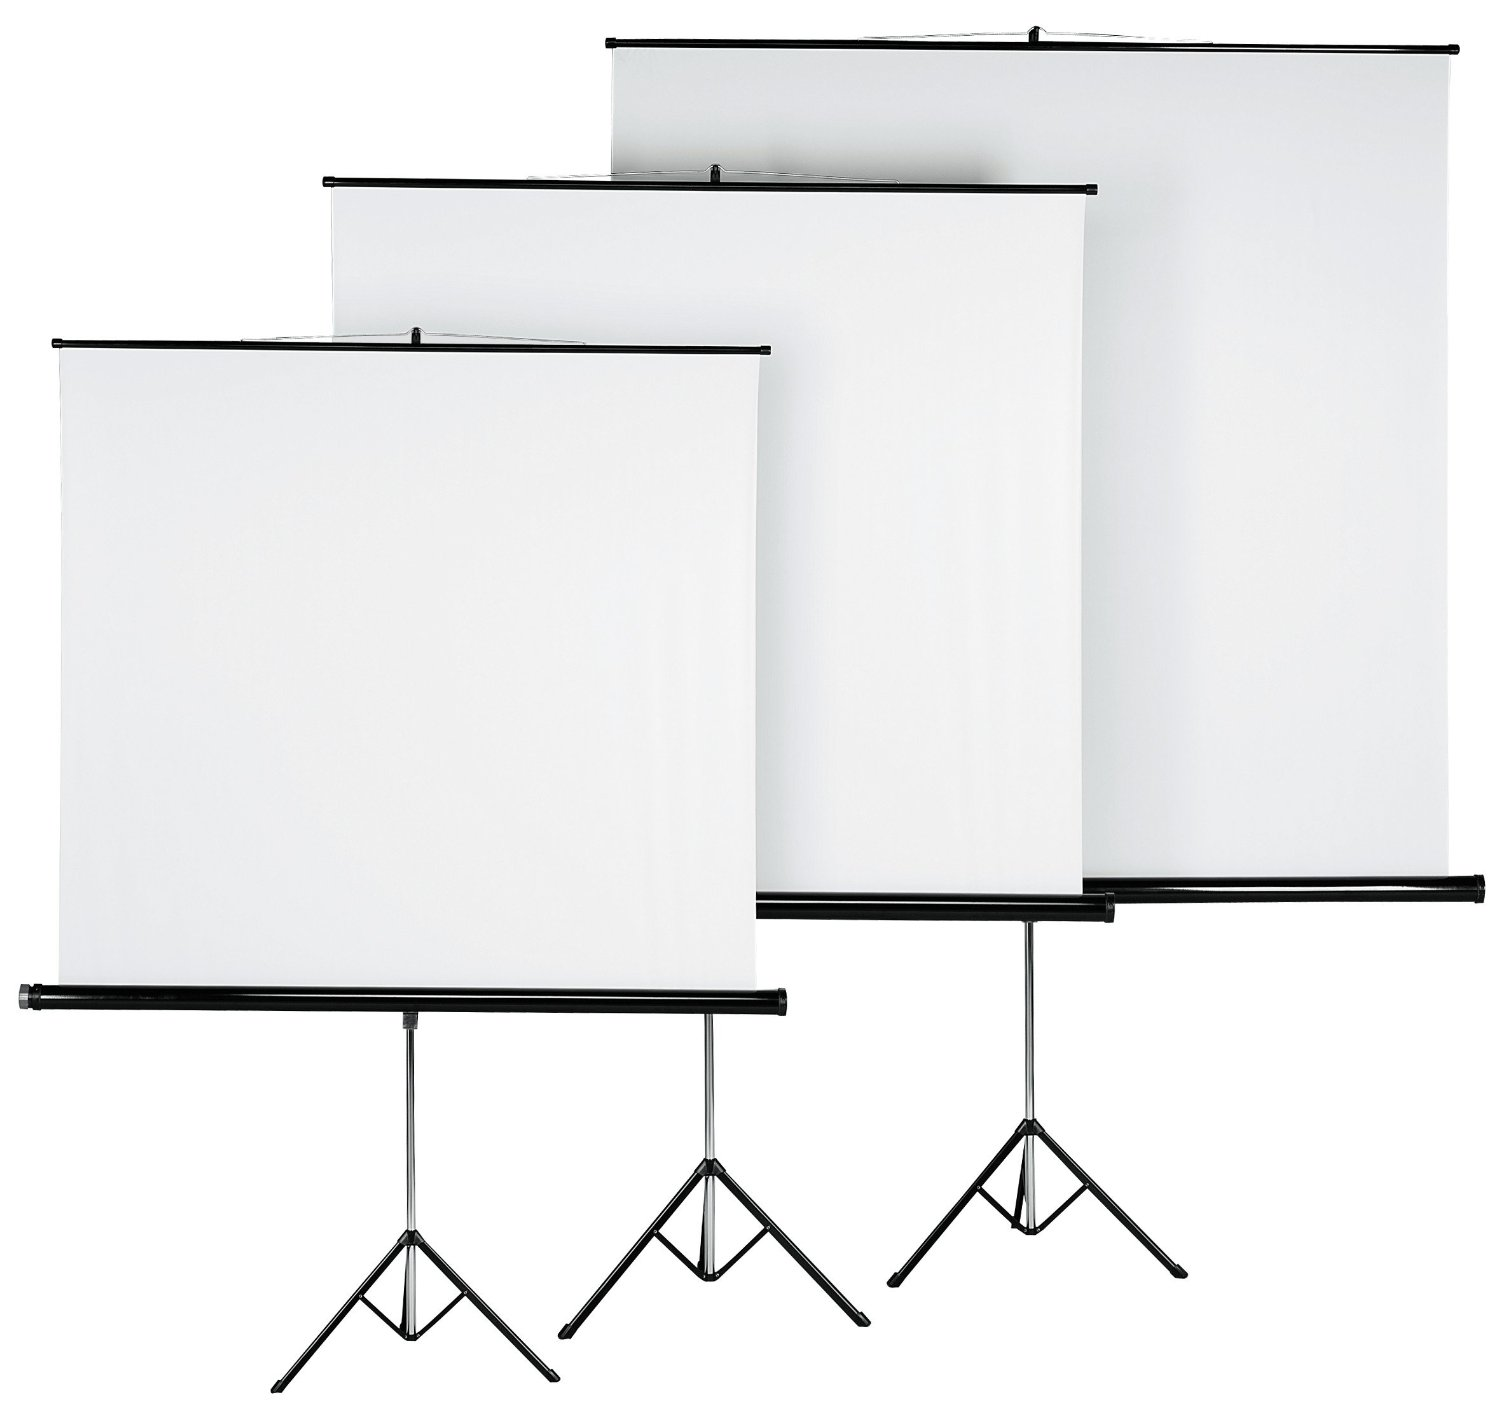 Projection Screens (20)